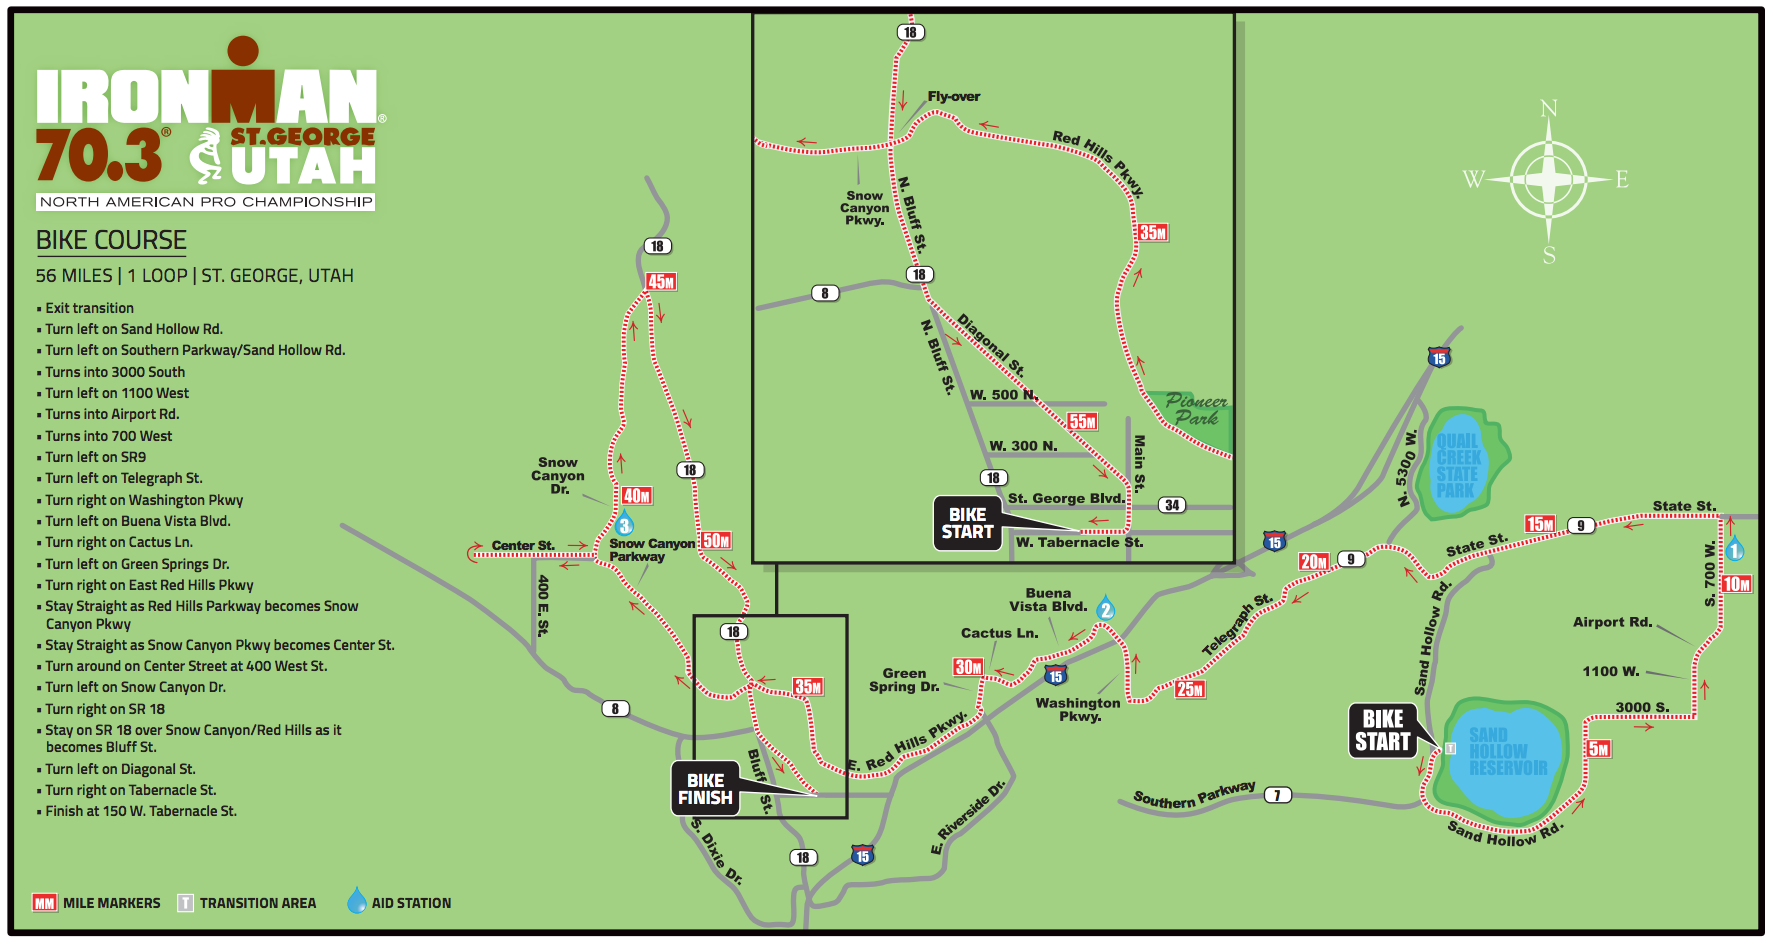 Bike course for Ironman 70.3 St. George | Image courtesy Ironman 70.3 St. George, St. George Utah